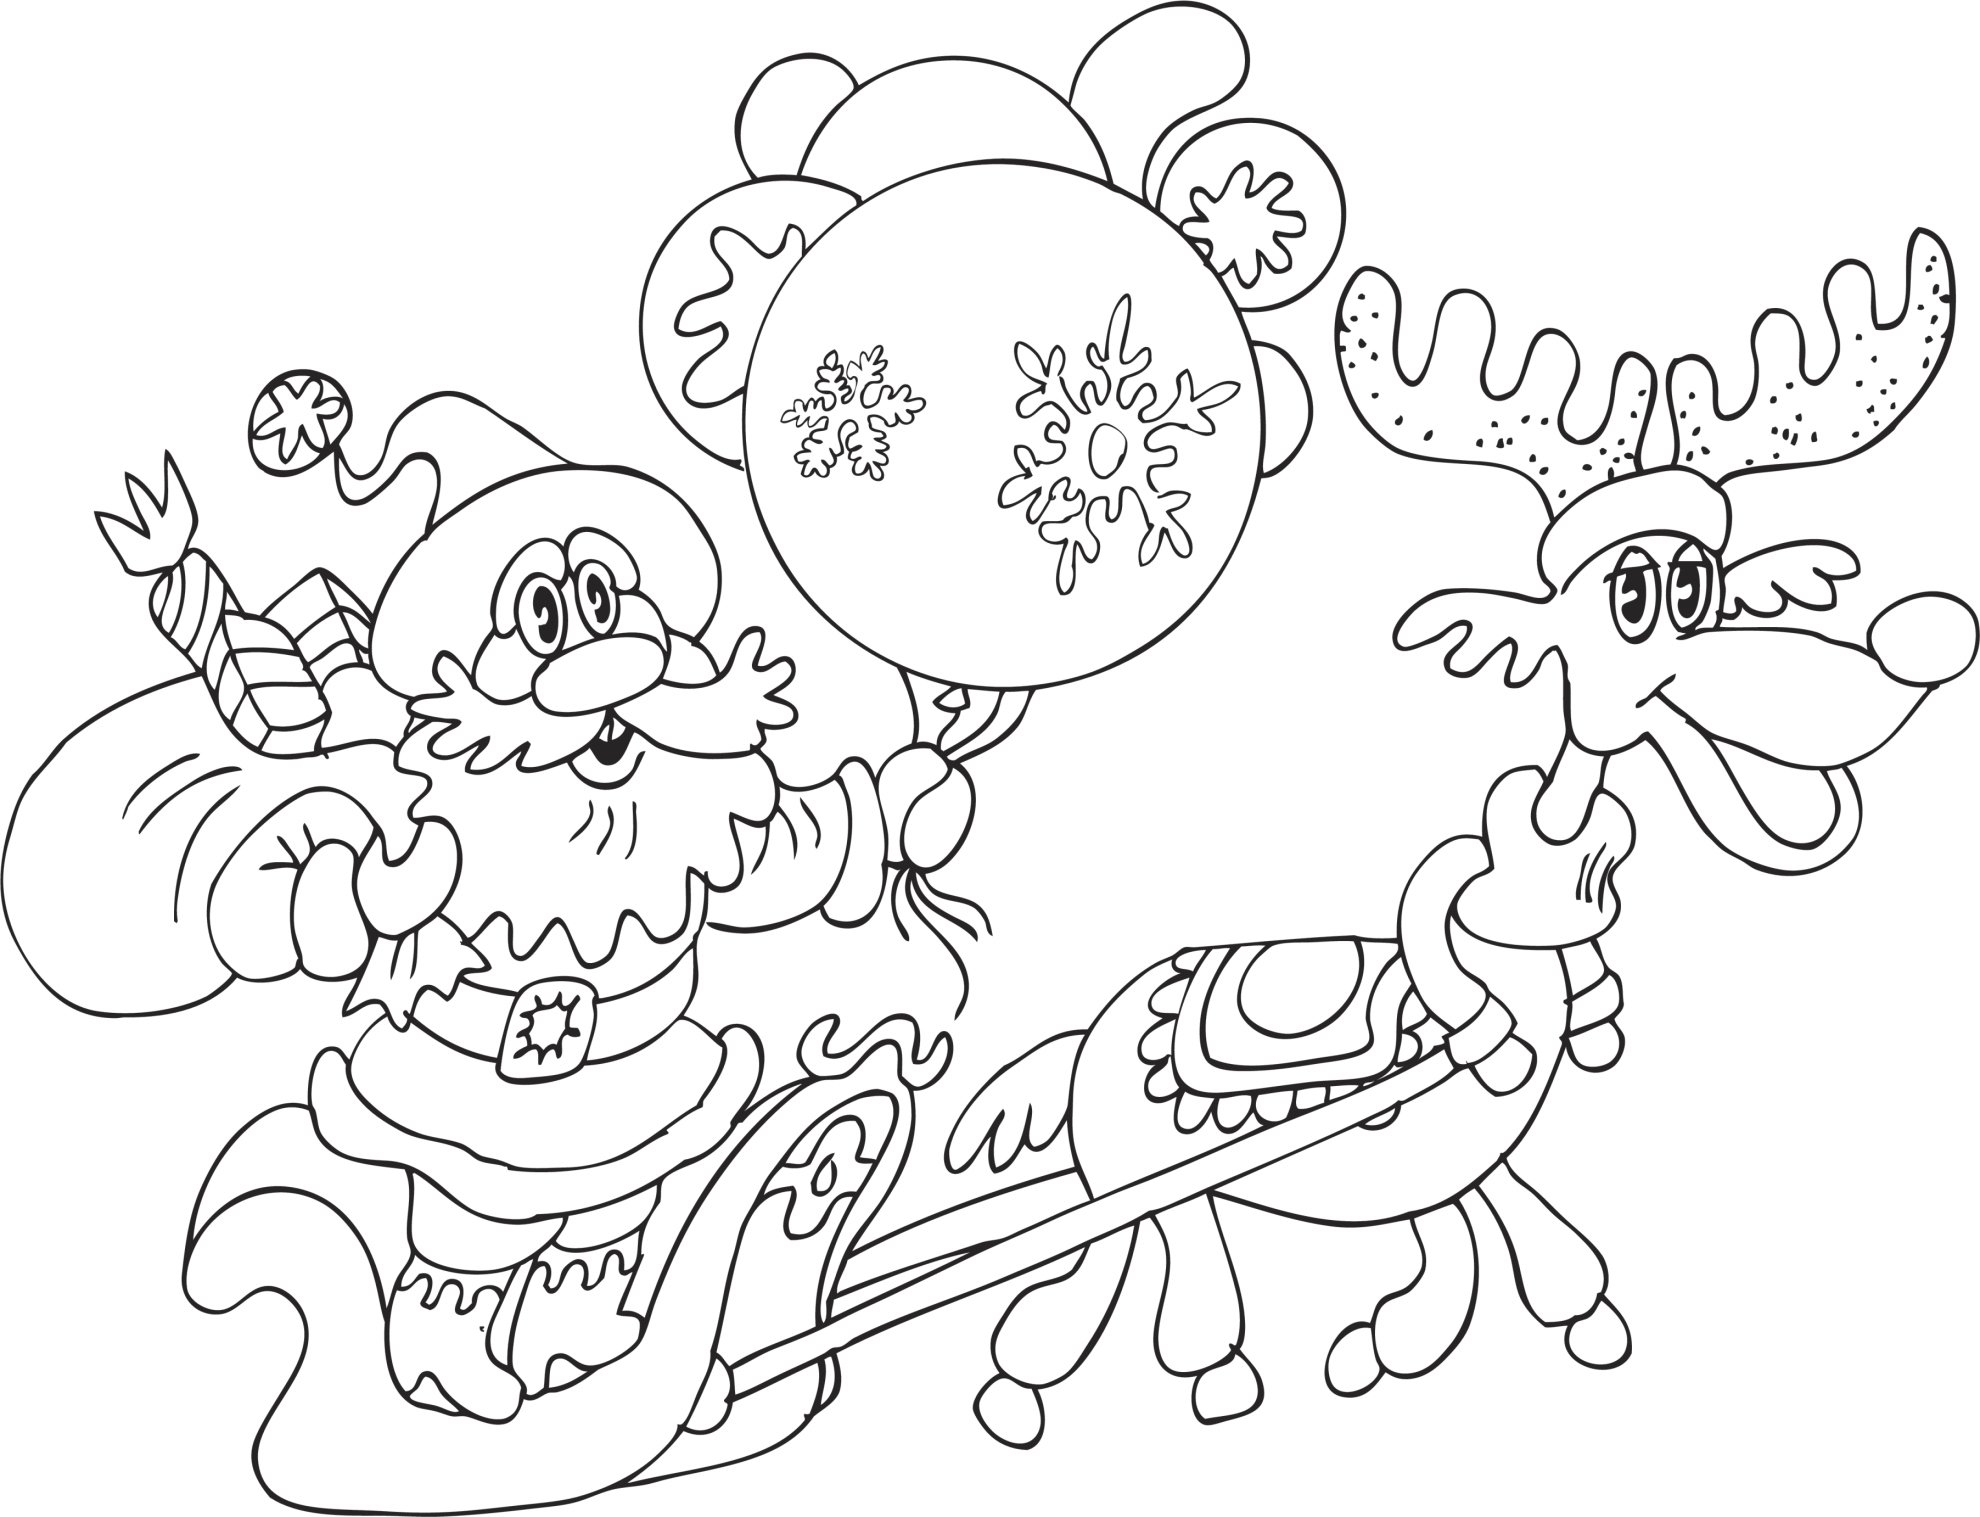 20 Santa and Reindeer Coloring Pages Collections | FREE COLORING ...